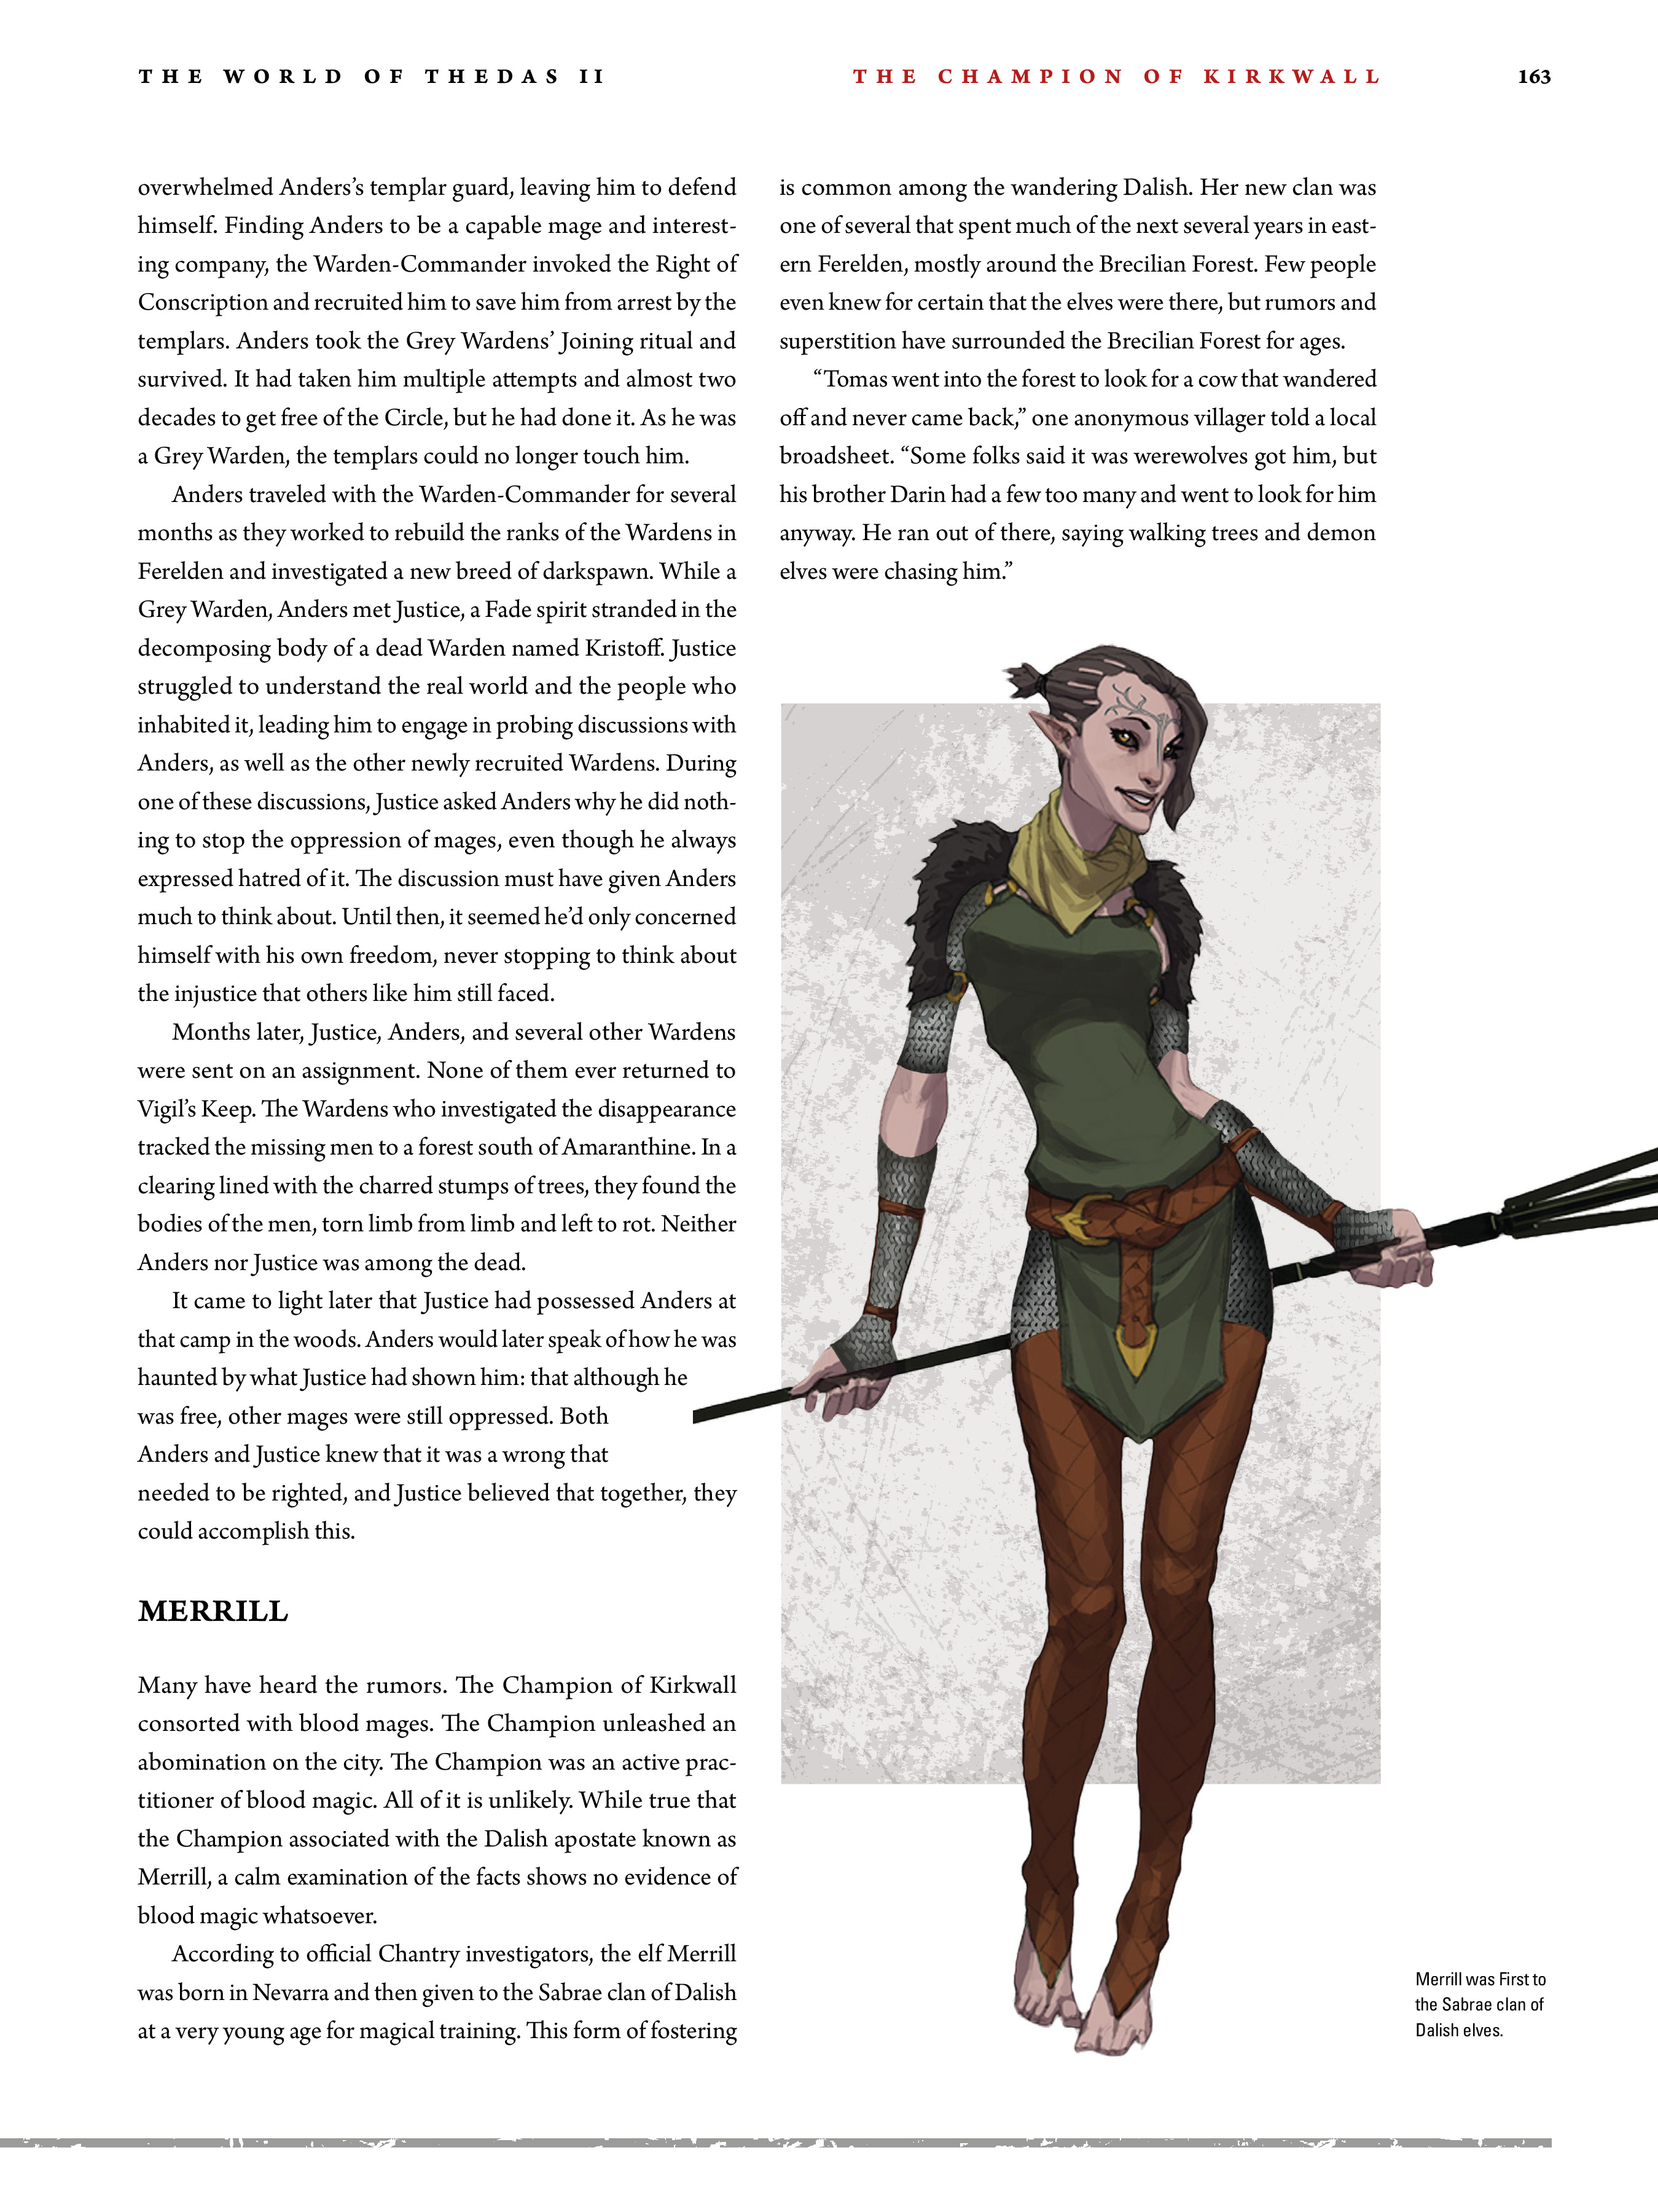 Read online Dragon Age: The World of Thedas comic -  Issue # TPB 2 - 159